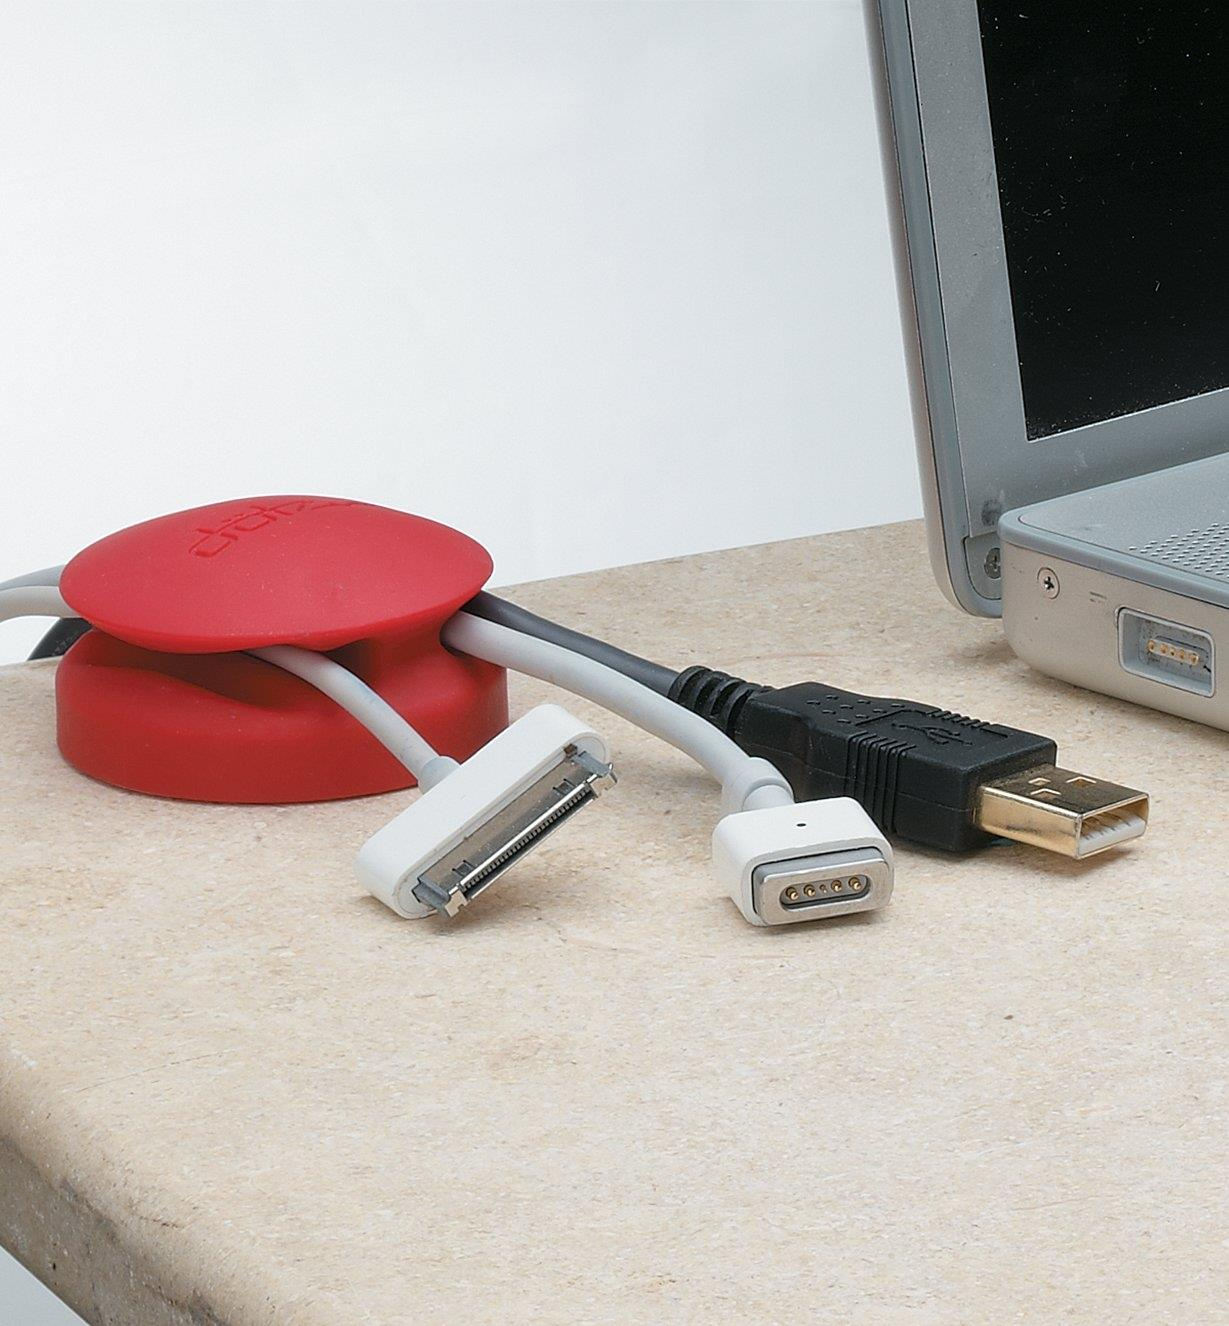 A Cord Catcher on a desk with three cables in the channels